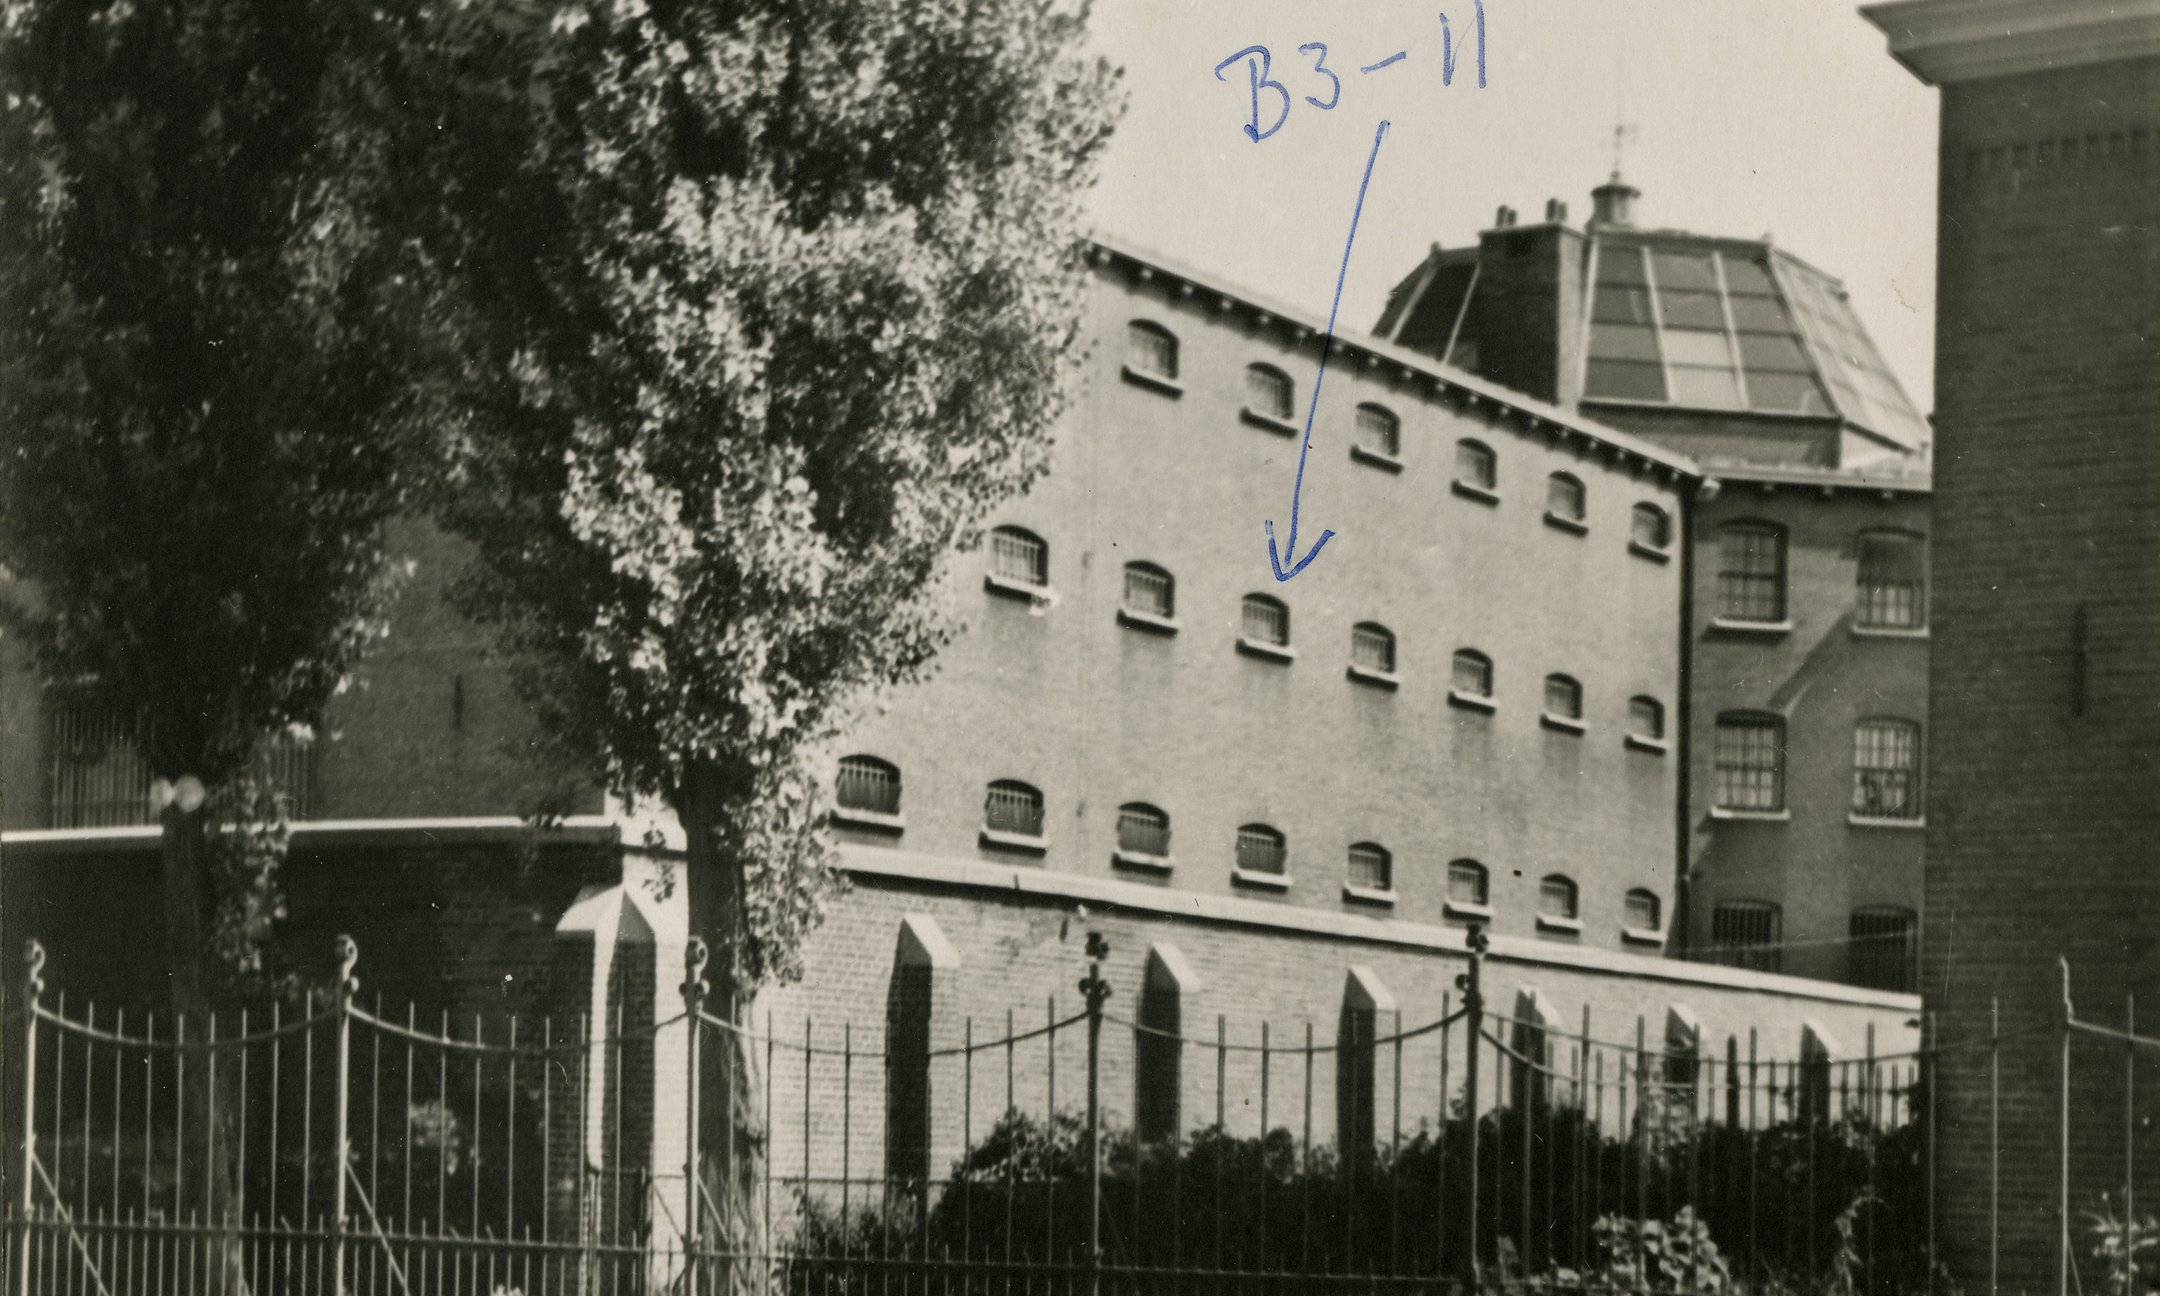 The Amsterdam prison where Johannes Kleiman and Victor Kugler were held for a month after their arrest. Victor Kugler has indicated the location of his cell.